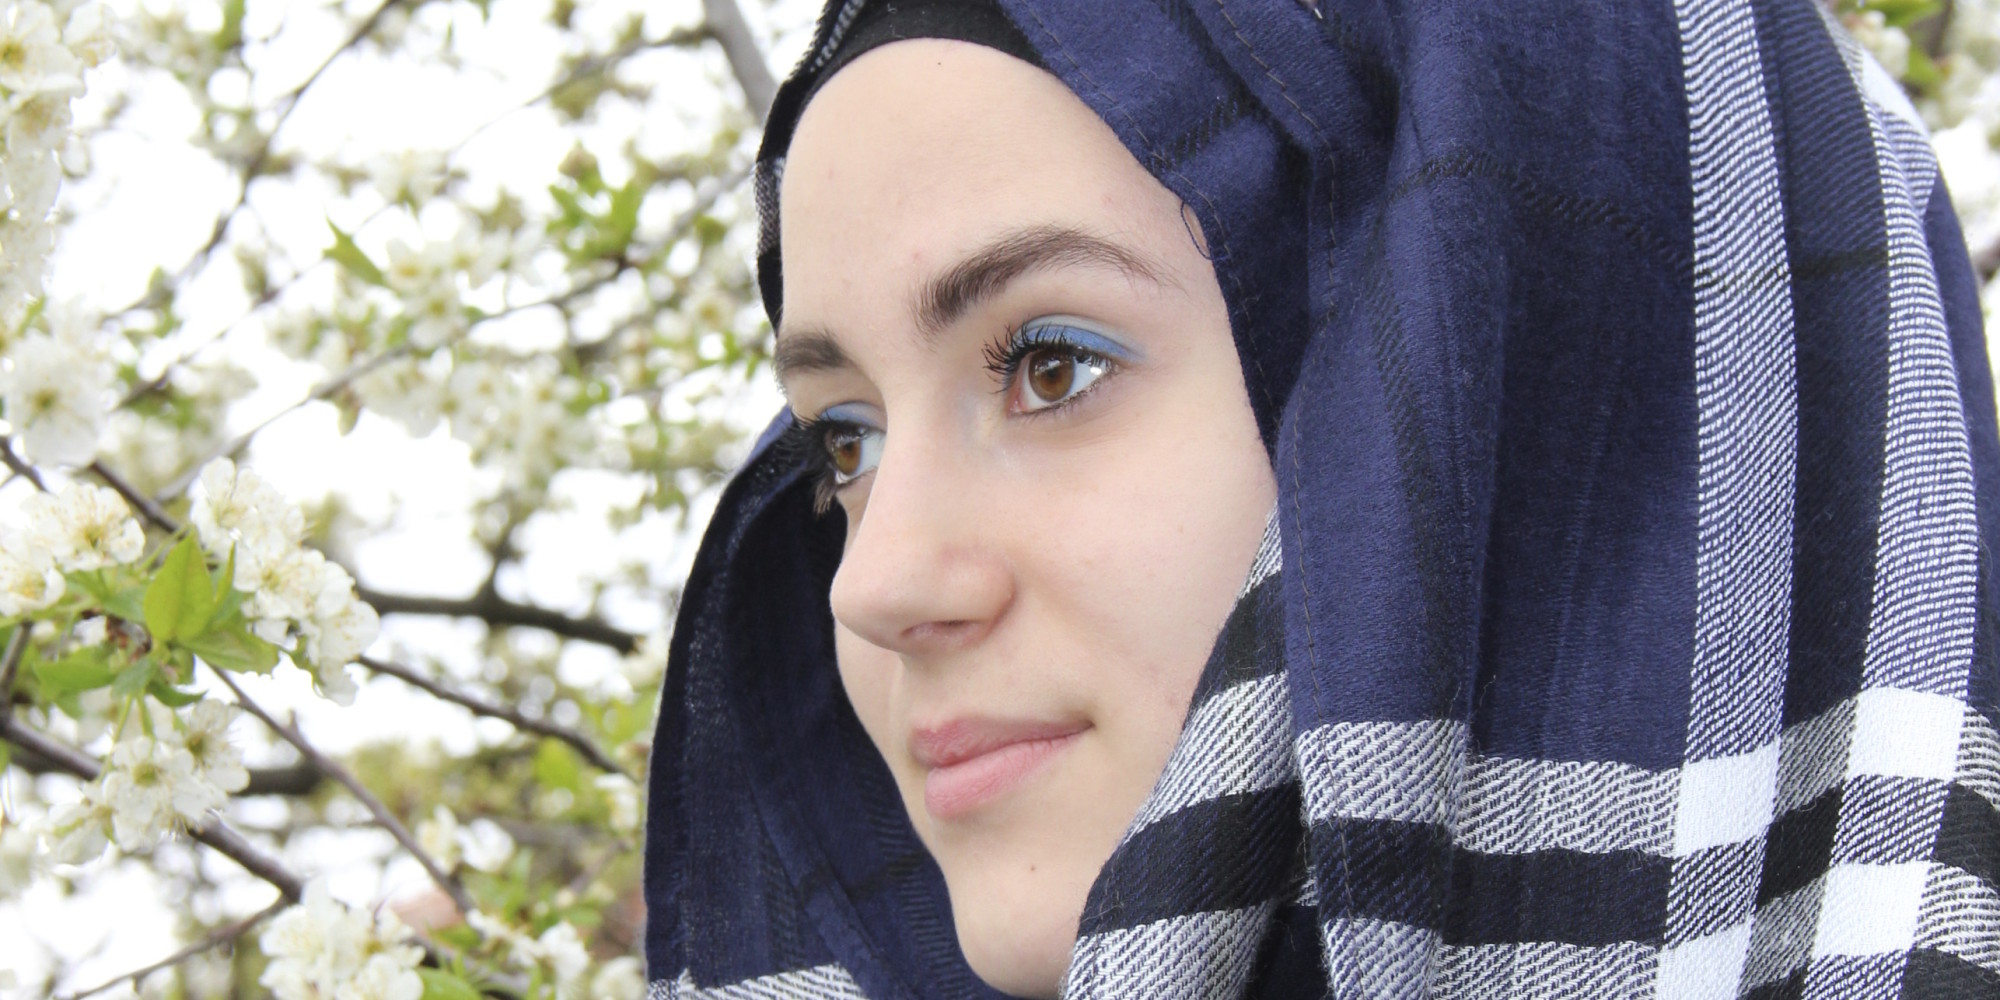 meta muslim girl personals Black muslim dating - find black muslim singles if you are looking for black muslim singles you may find your match - here and now this free black muslim dating site provides you with all those features which make searching and browsing as easy as you've always wished for.